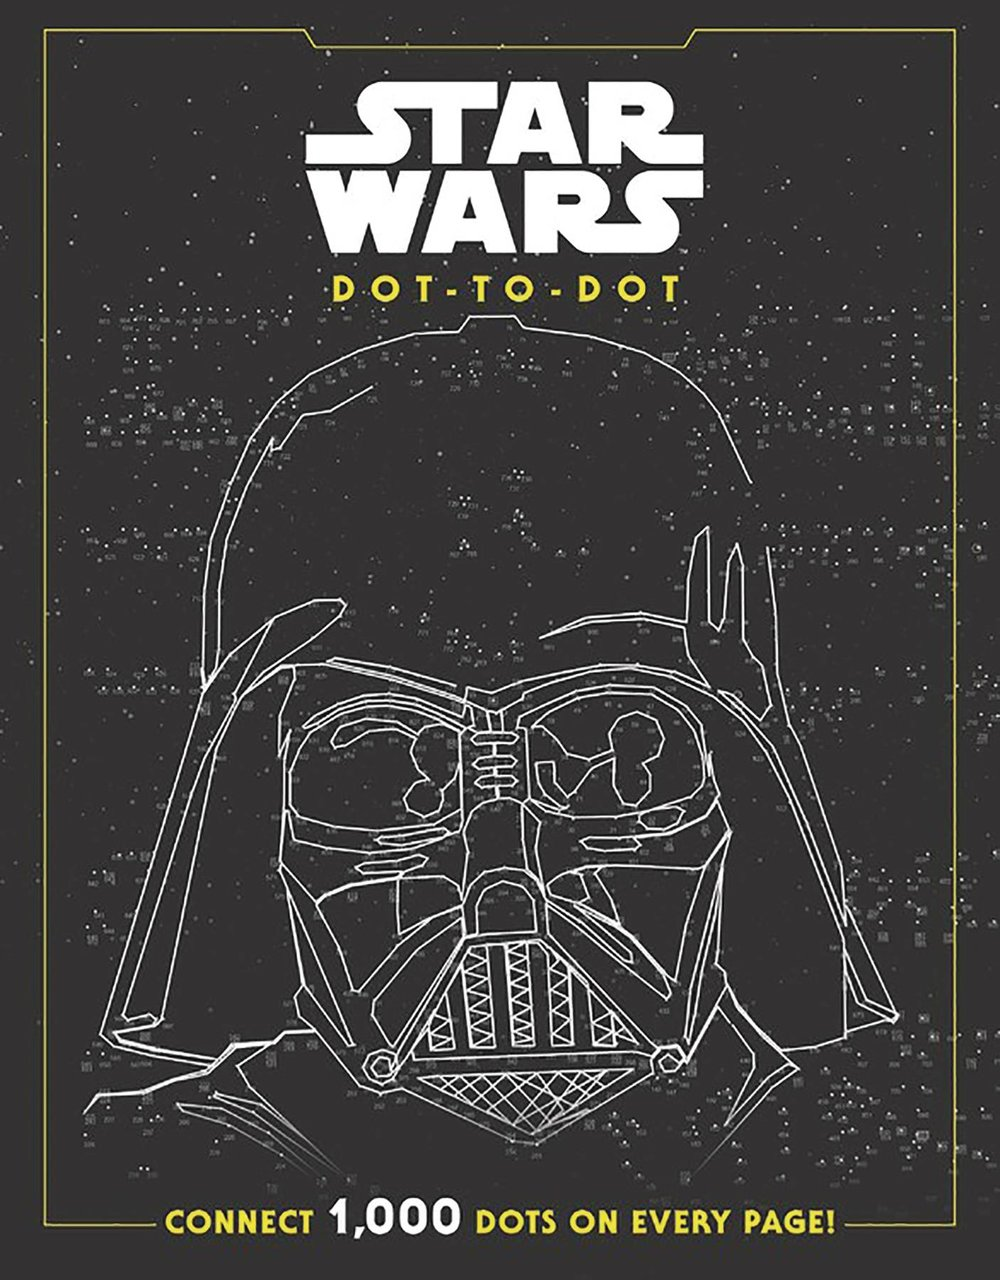 STAR WARS DOT TO DOT BOOK.jpg